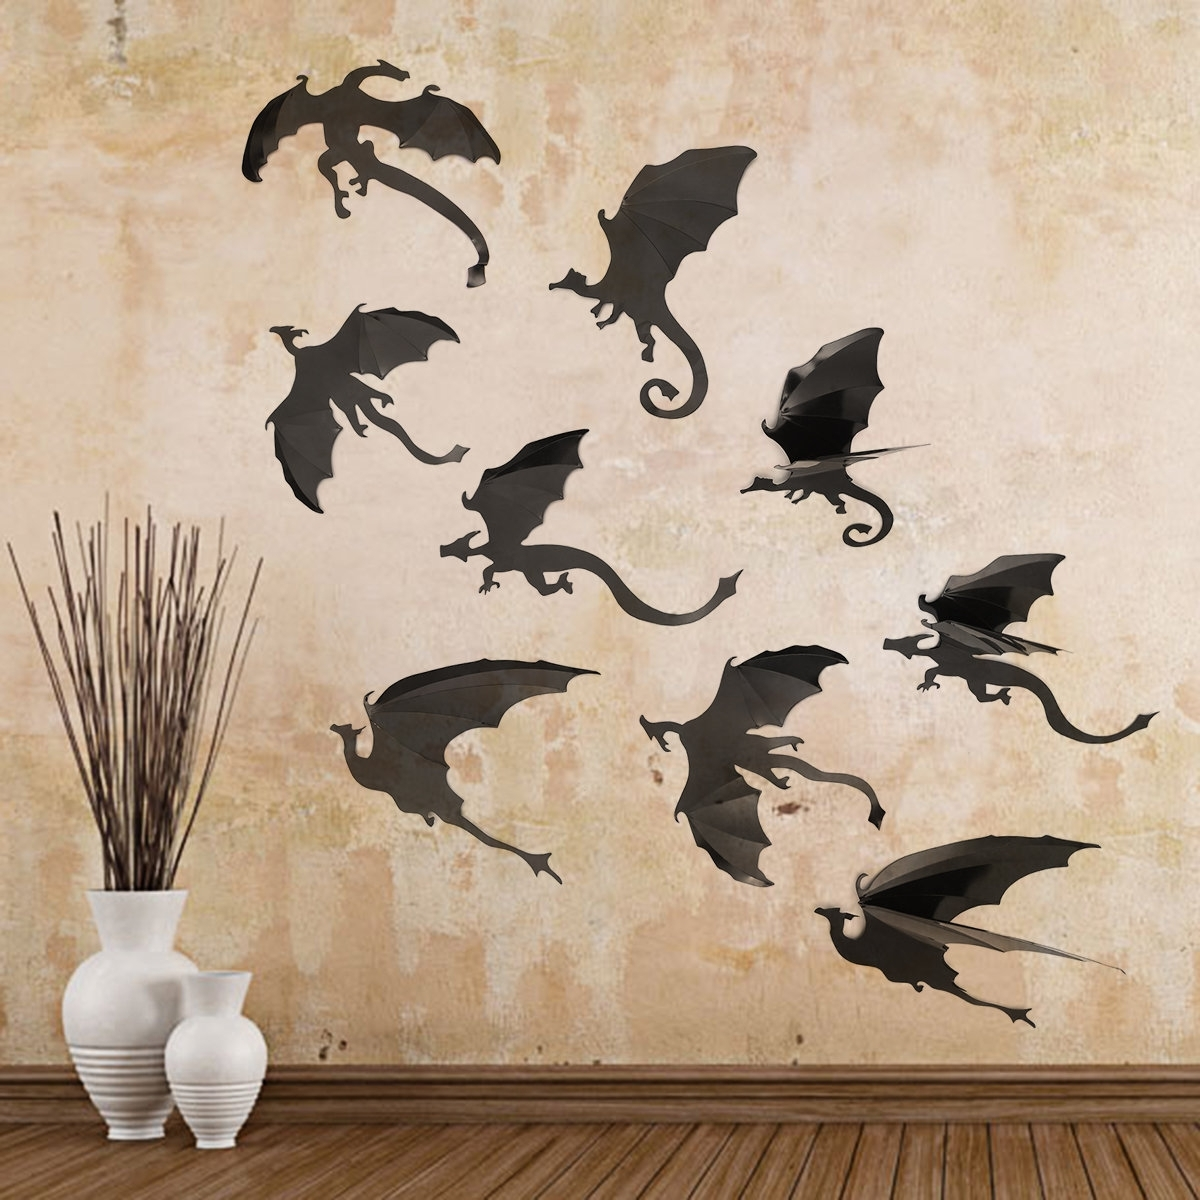 Wall Decoration. Dragon Wall Art – Wall Decoration And Wall Art Ideas With Most Recently Released Dragon Wall Art (Gallery 17 of 20)